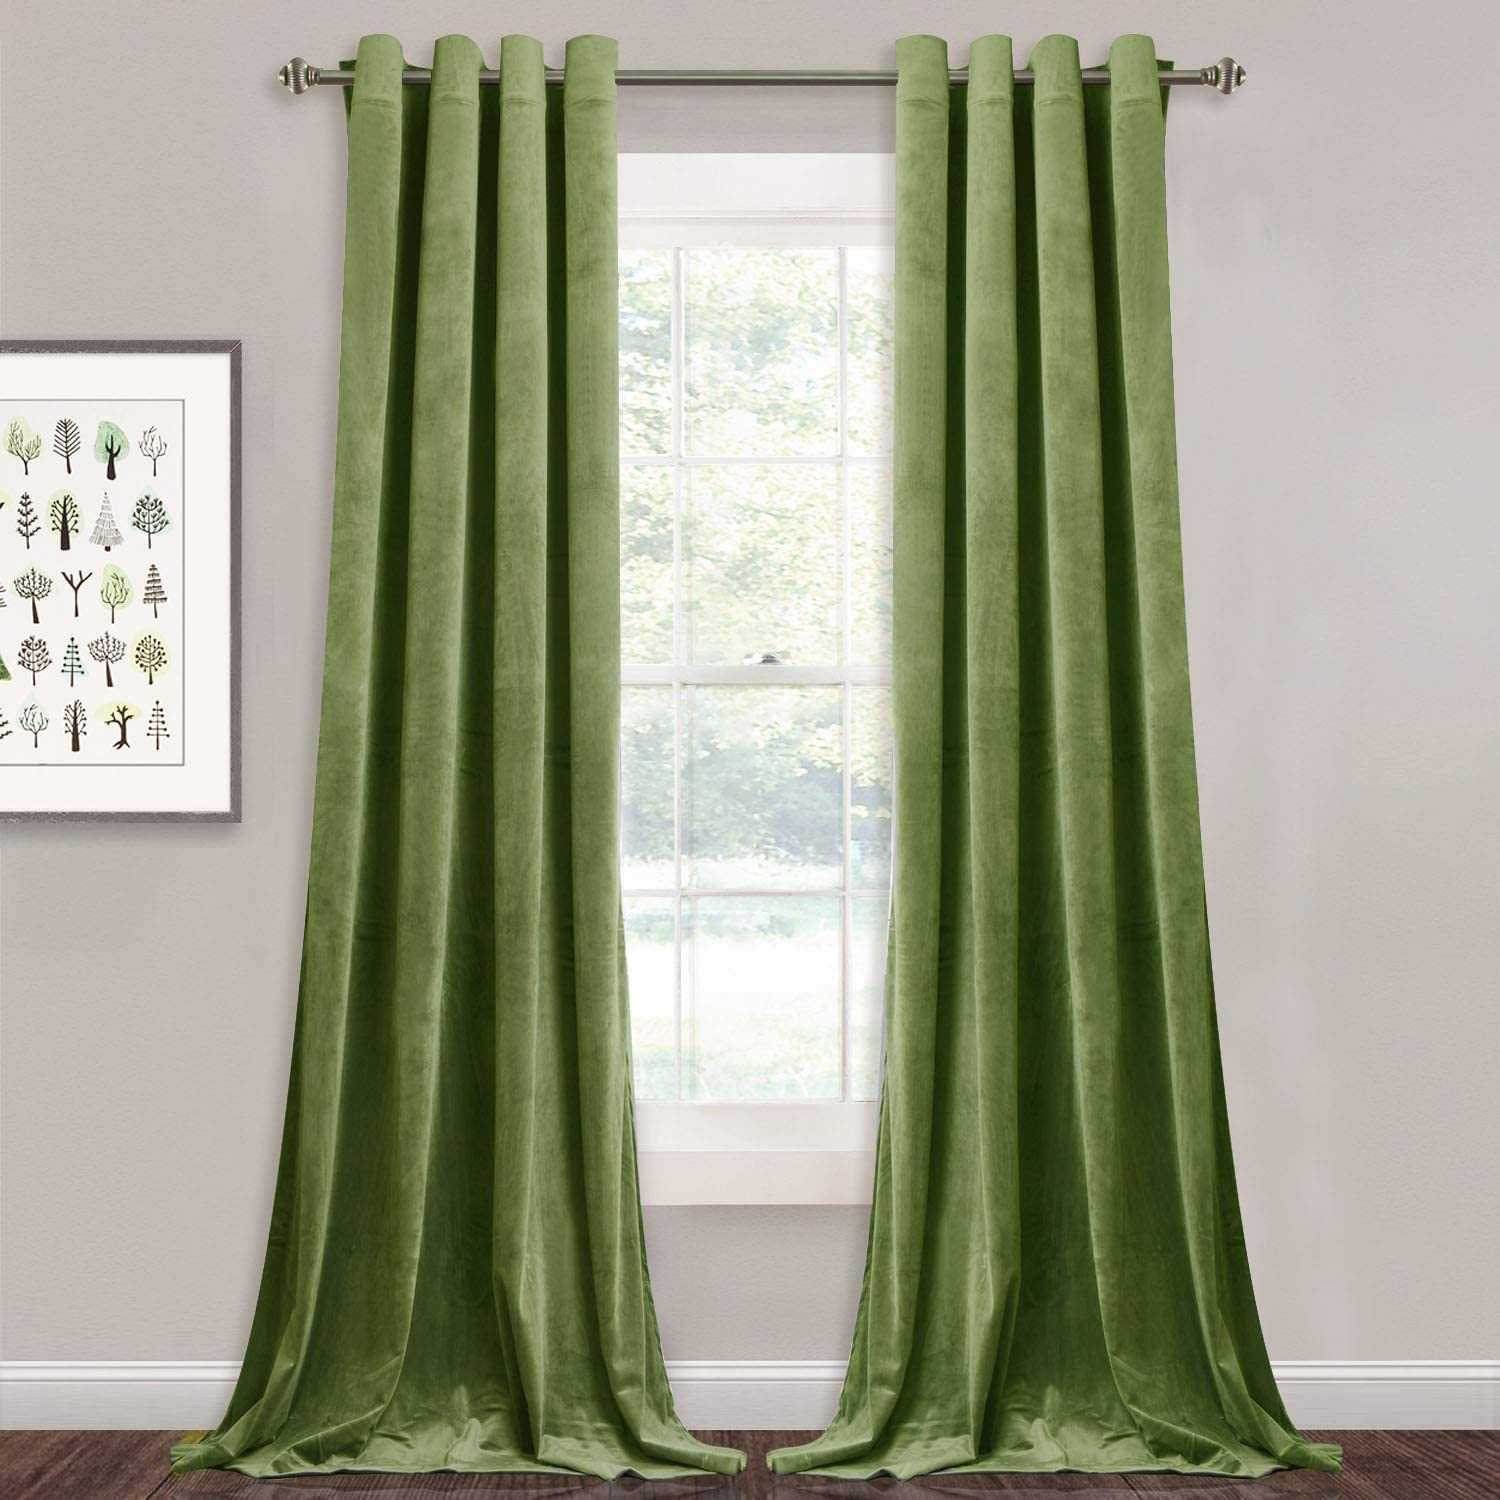 StangH Velvet Curtains 108 inches Long - Feel Soft Velvet Fabric Grommet Light Blocking Curtain Panels Extra Long Wall Backdrops Decoration for Living Room Hall, Olive Green, W52 x L108, 2 Panels